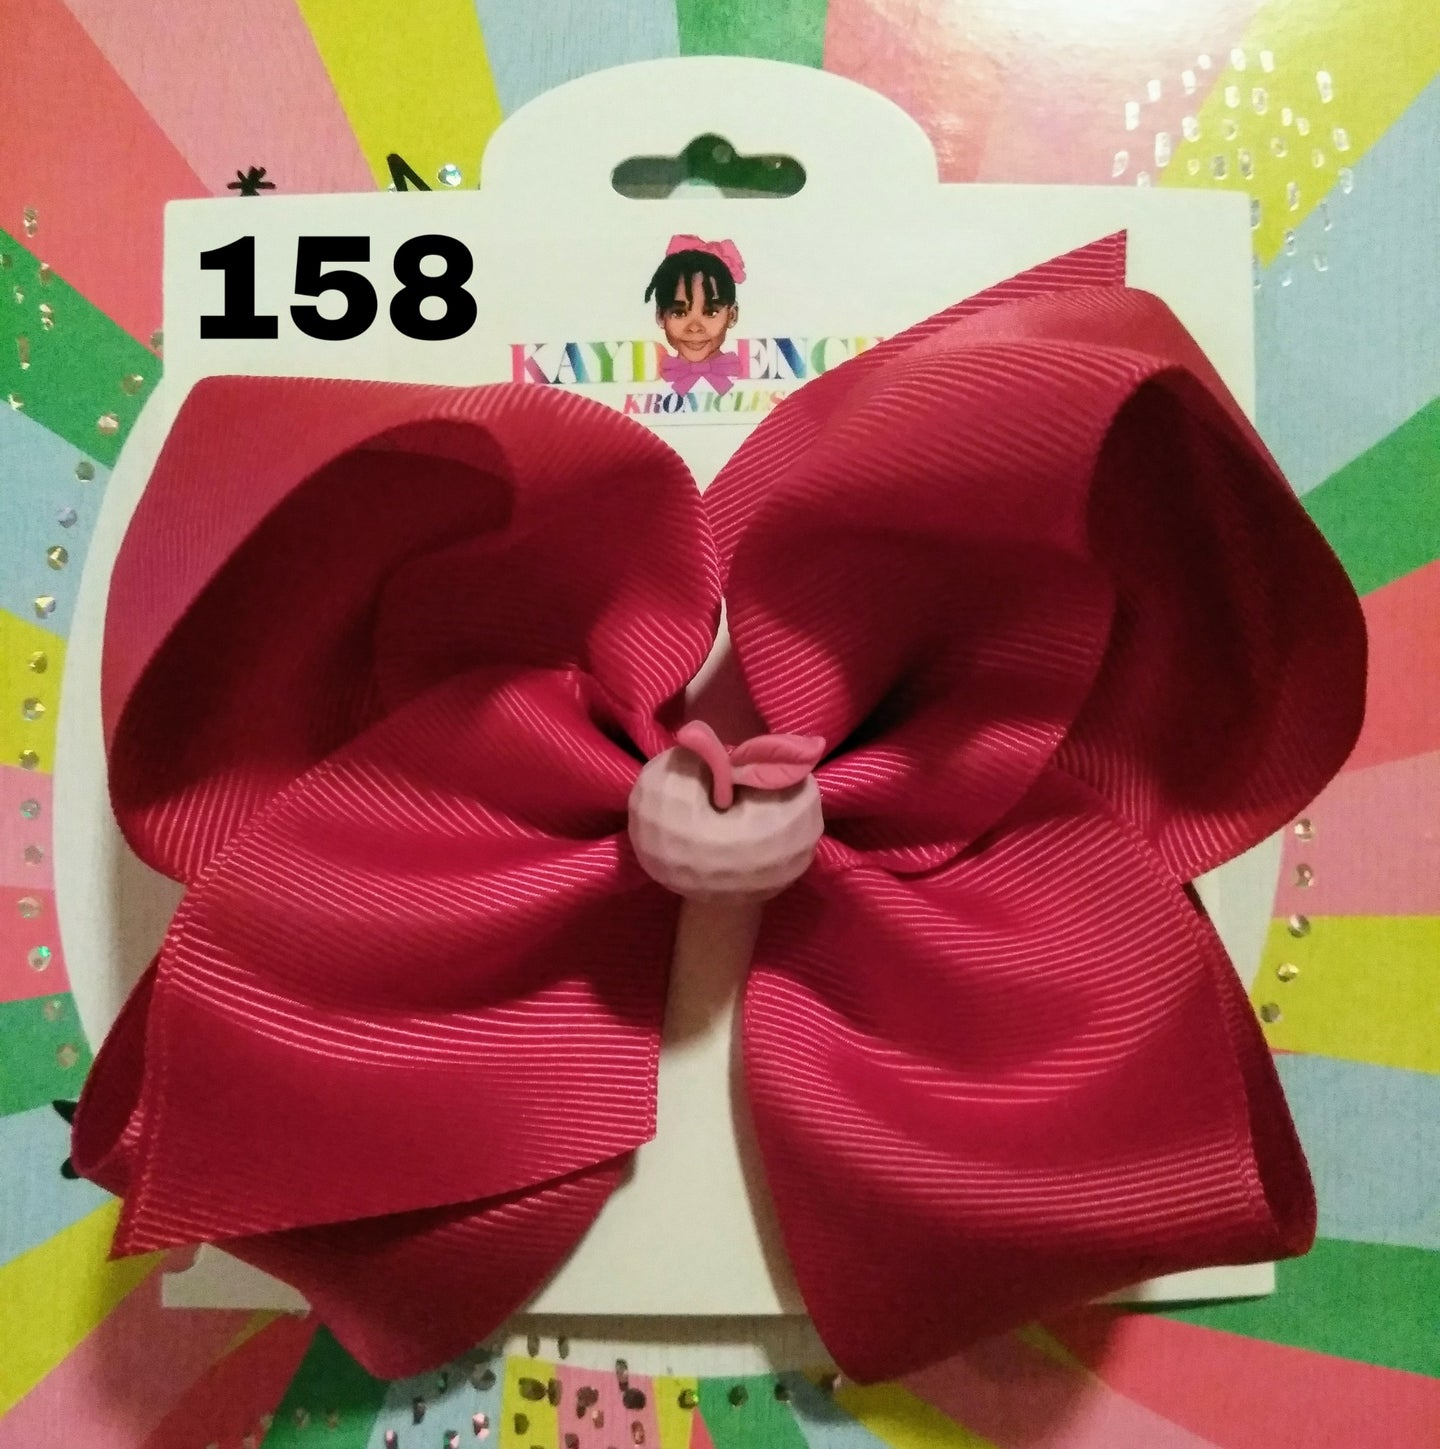 6 Inch Solid Colored Hair Bow with Apple